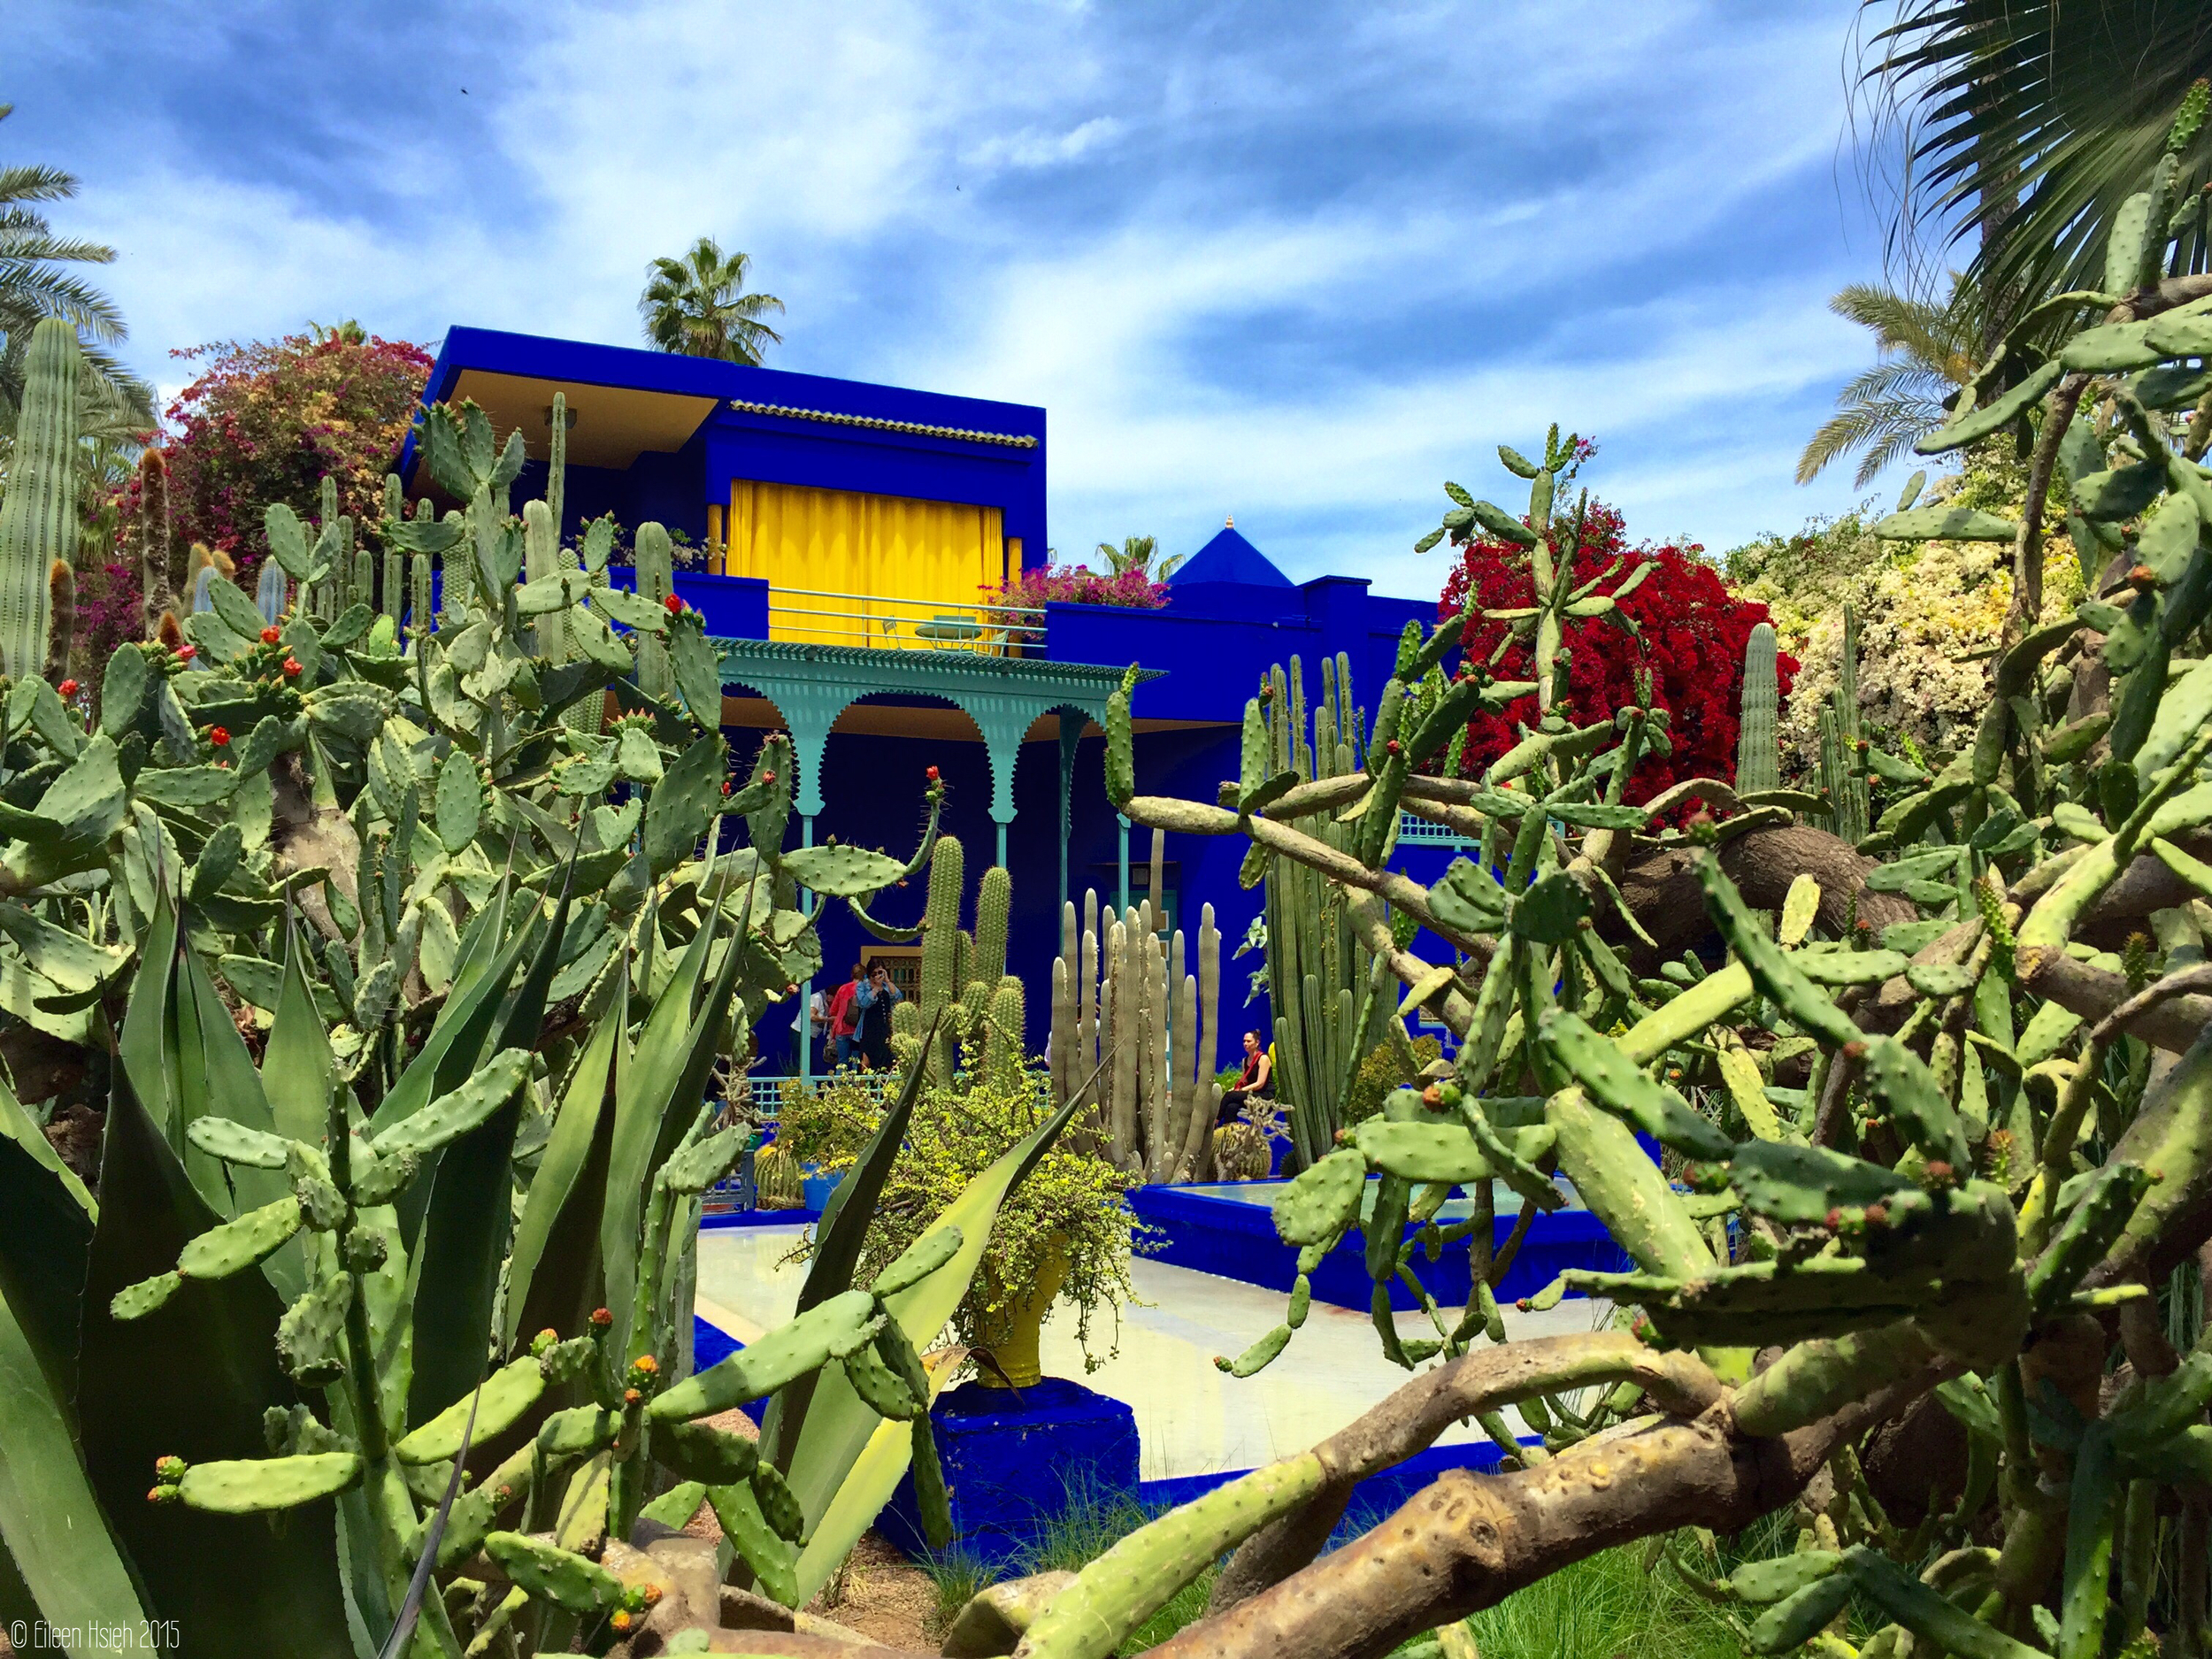 An oasis outside of the maddening medina, Jardin Majorelle is a top tourist attraction in Marrakech. Jardin Majorelle 馬若雷爾花園是城市裡的綠洲,也是旅客的最愛。